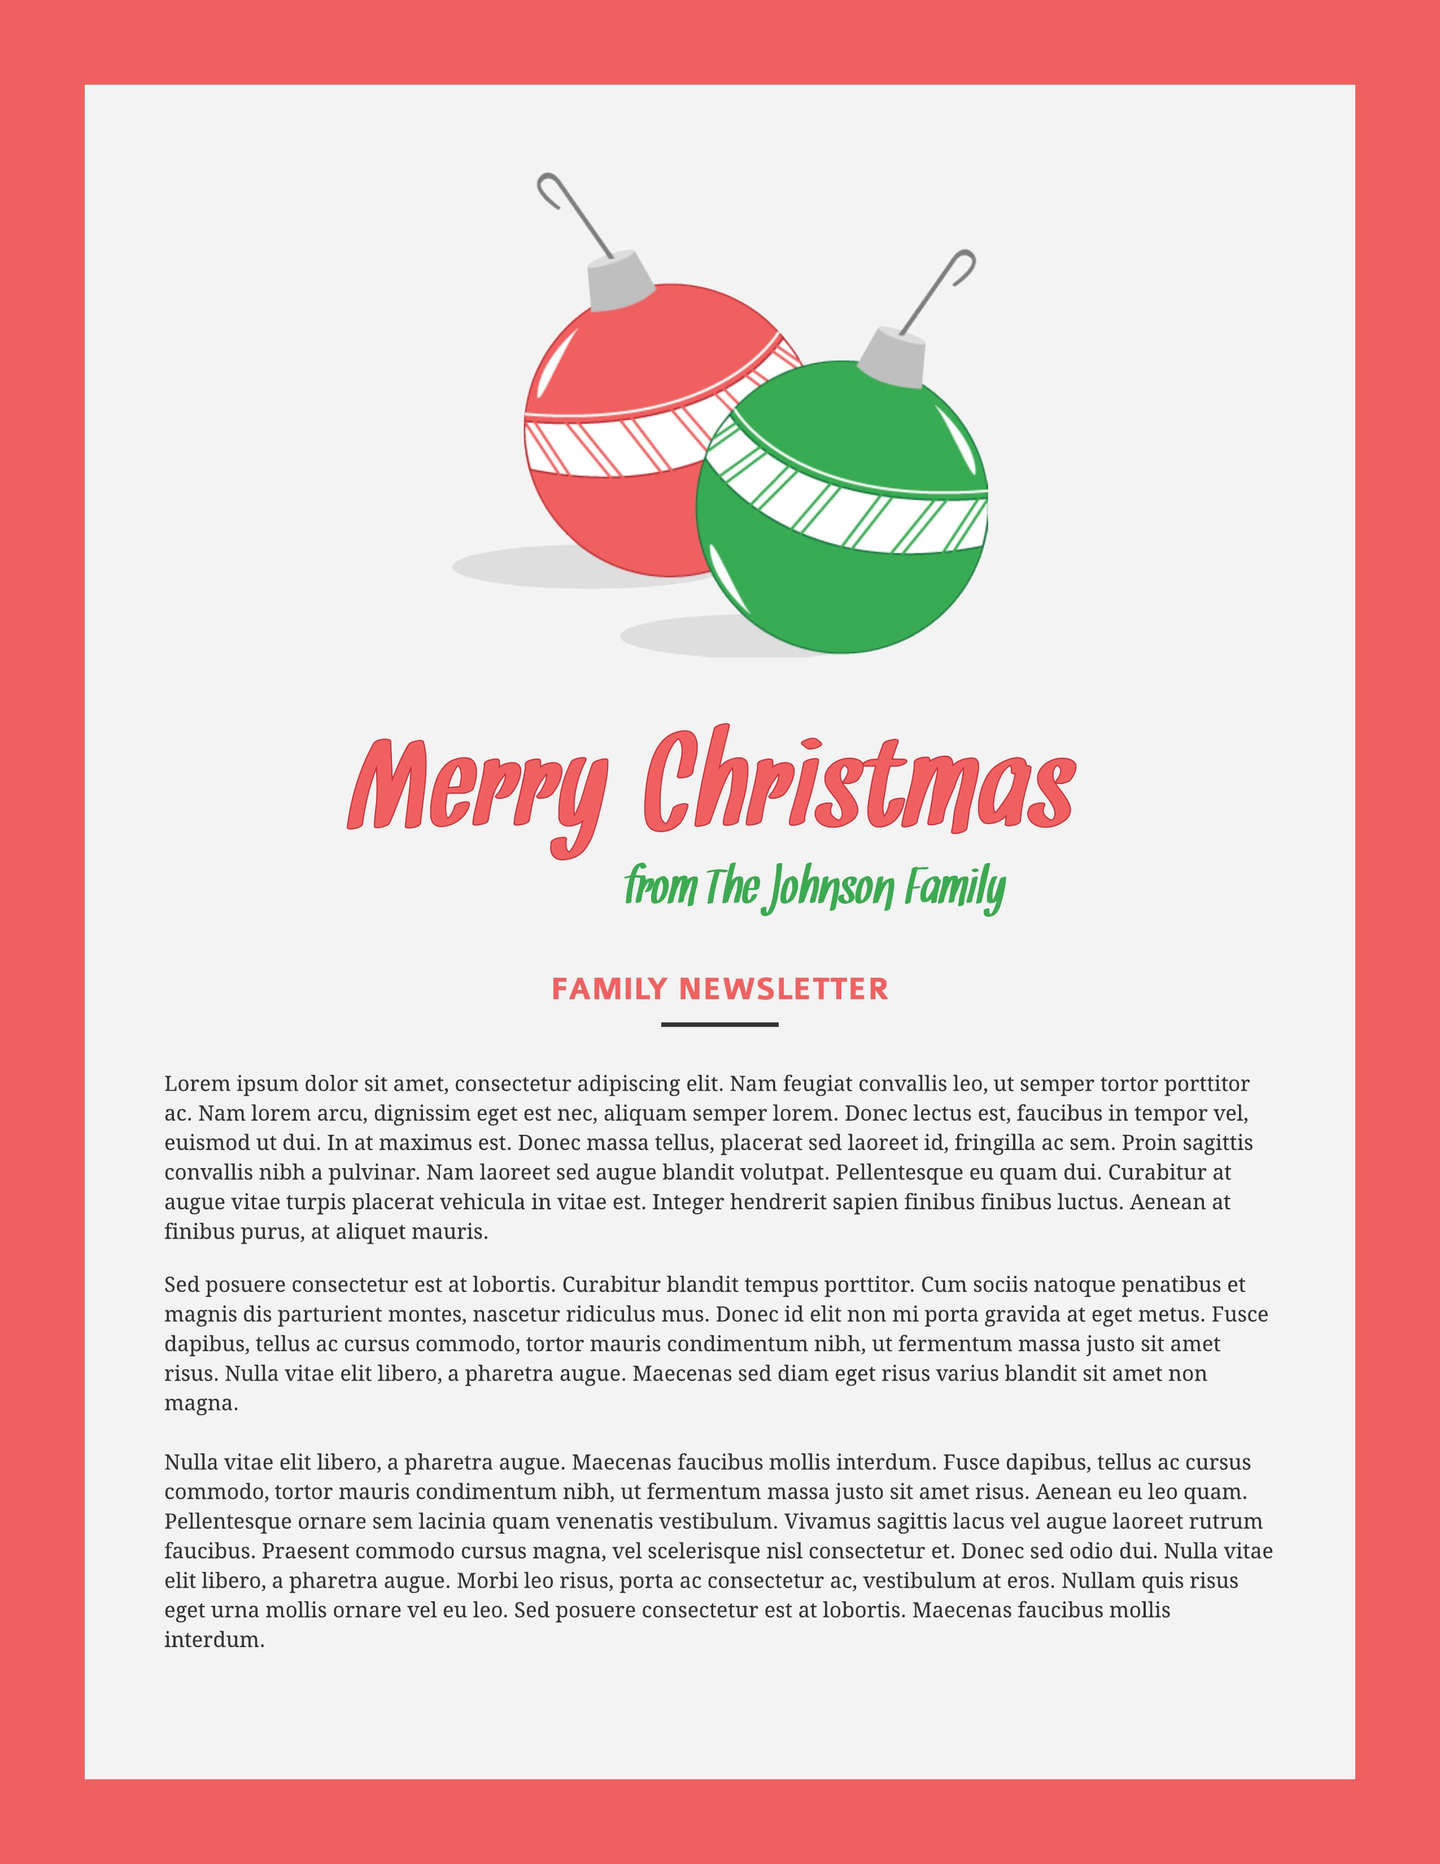 free holiday newsletter templates examples